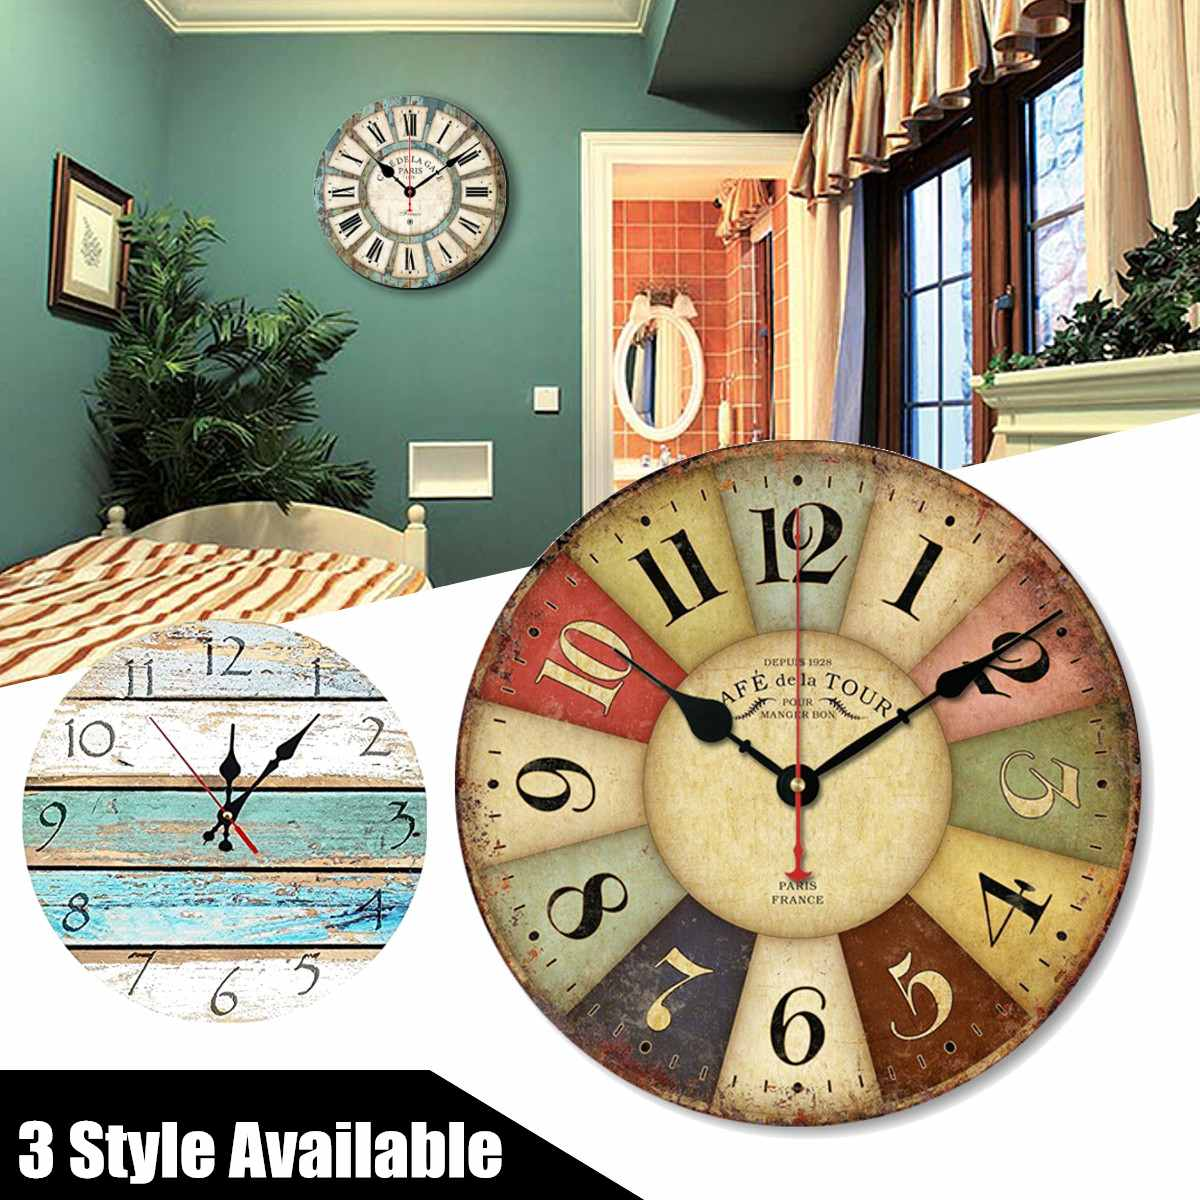 12 Inch DIY Vintage Round Wall Hanging Clock Battery Powered Home Living Room Modern Watch Decoration Ornament